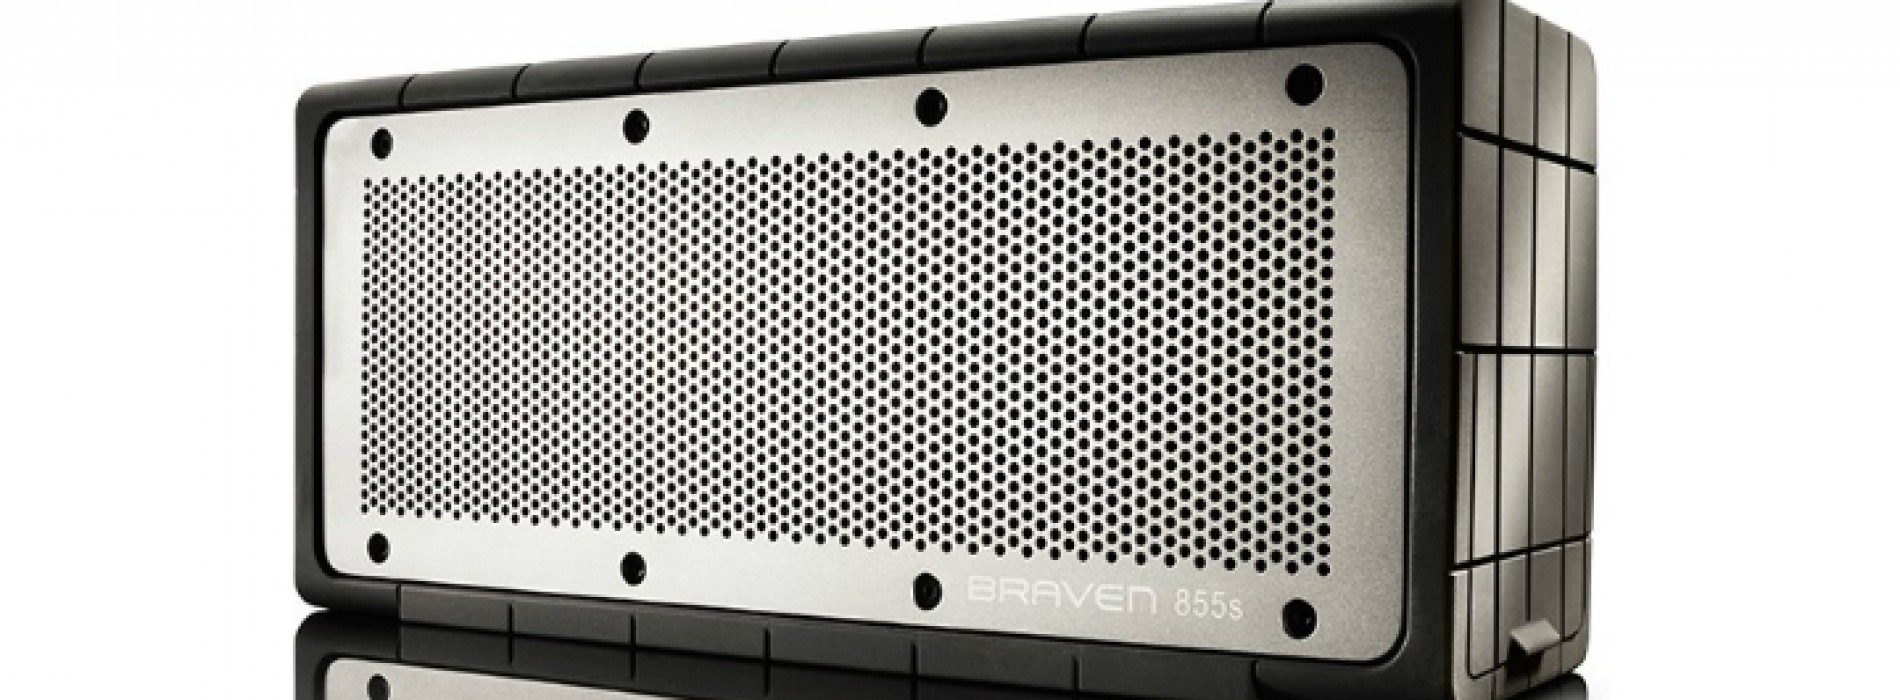 BRAVEN 855s Bluetooth weather-resistant speaker review